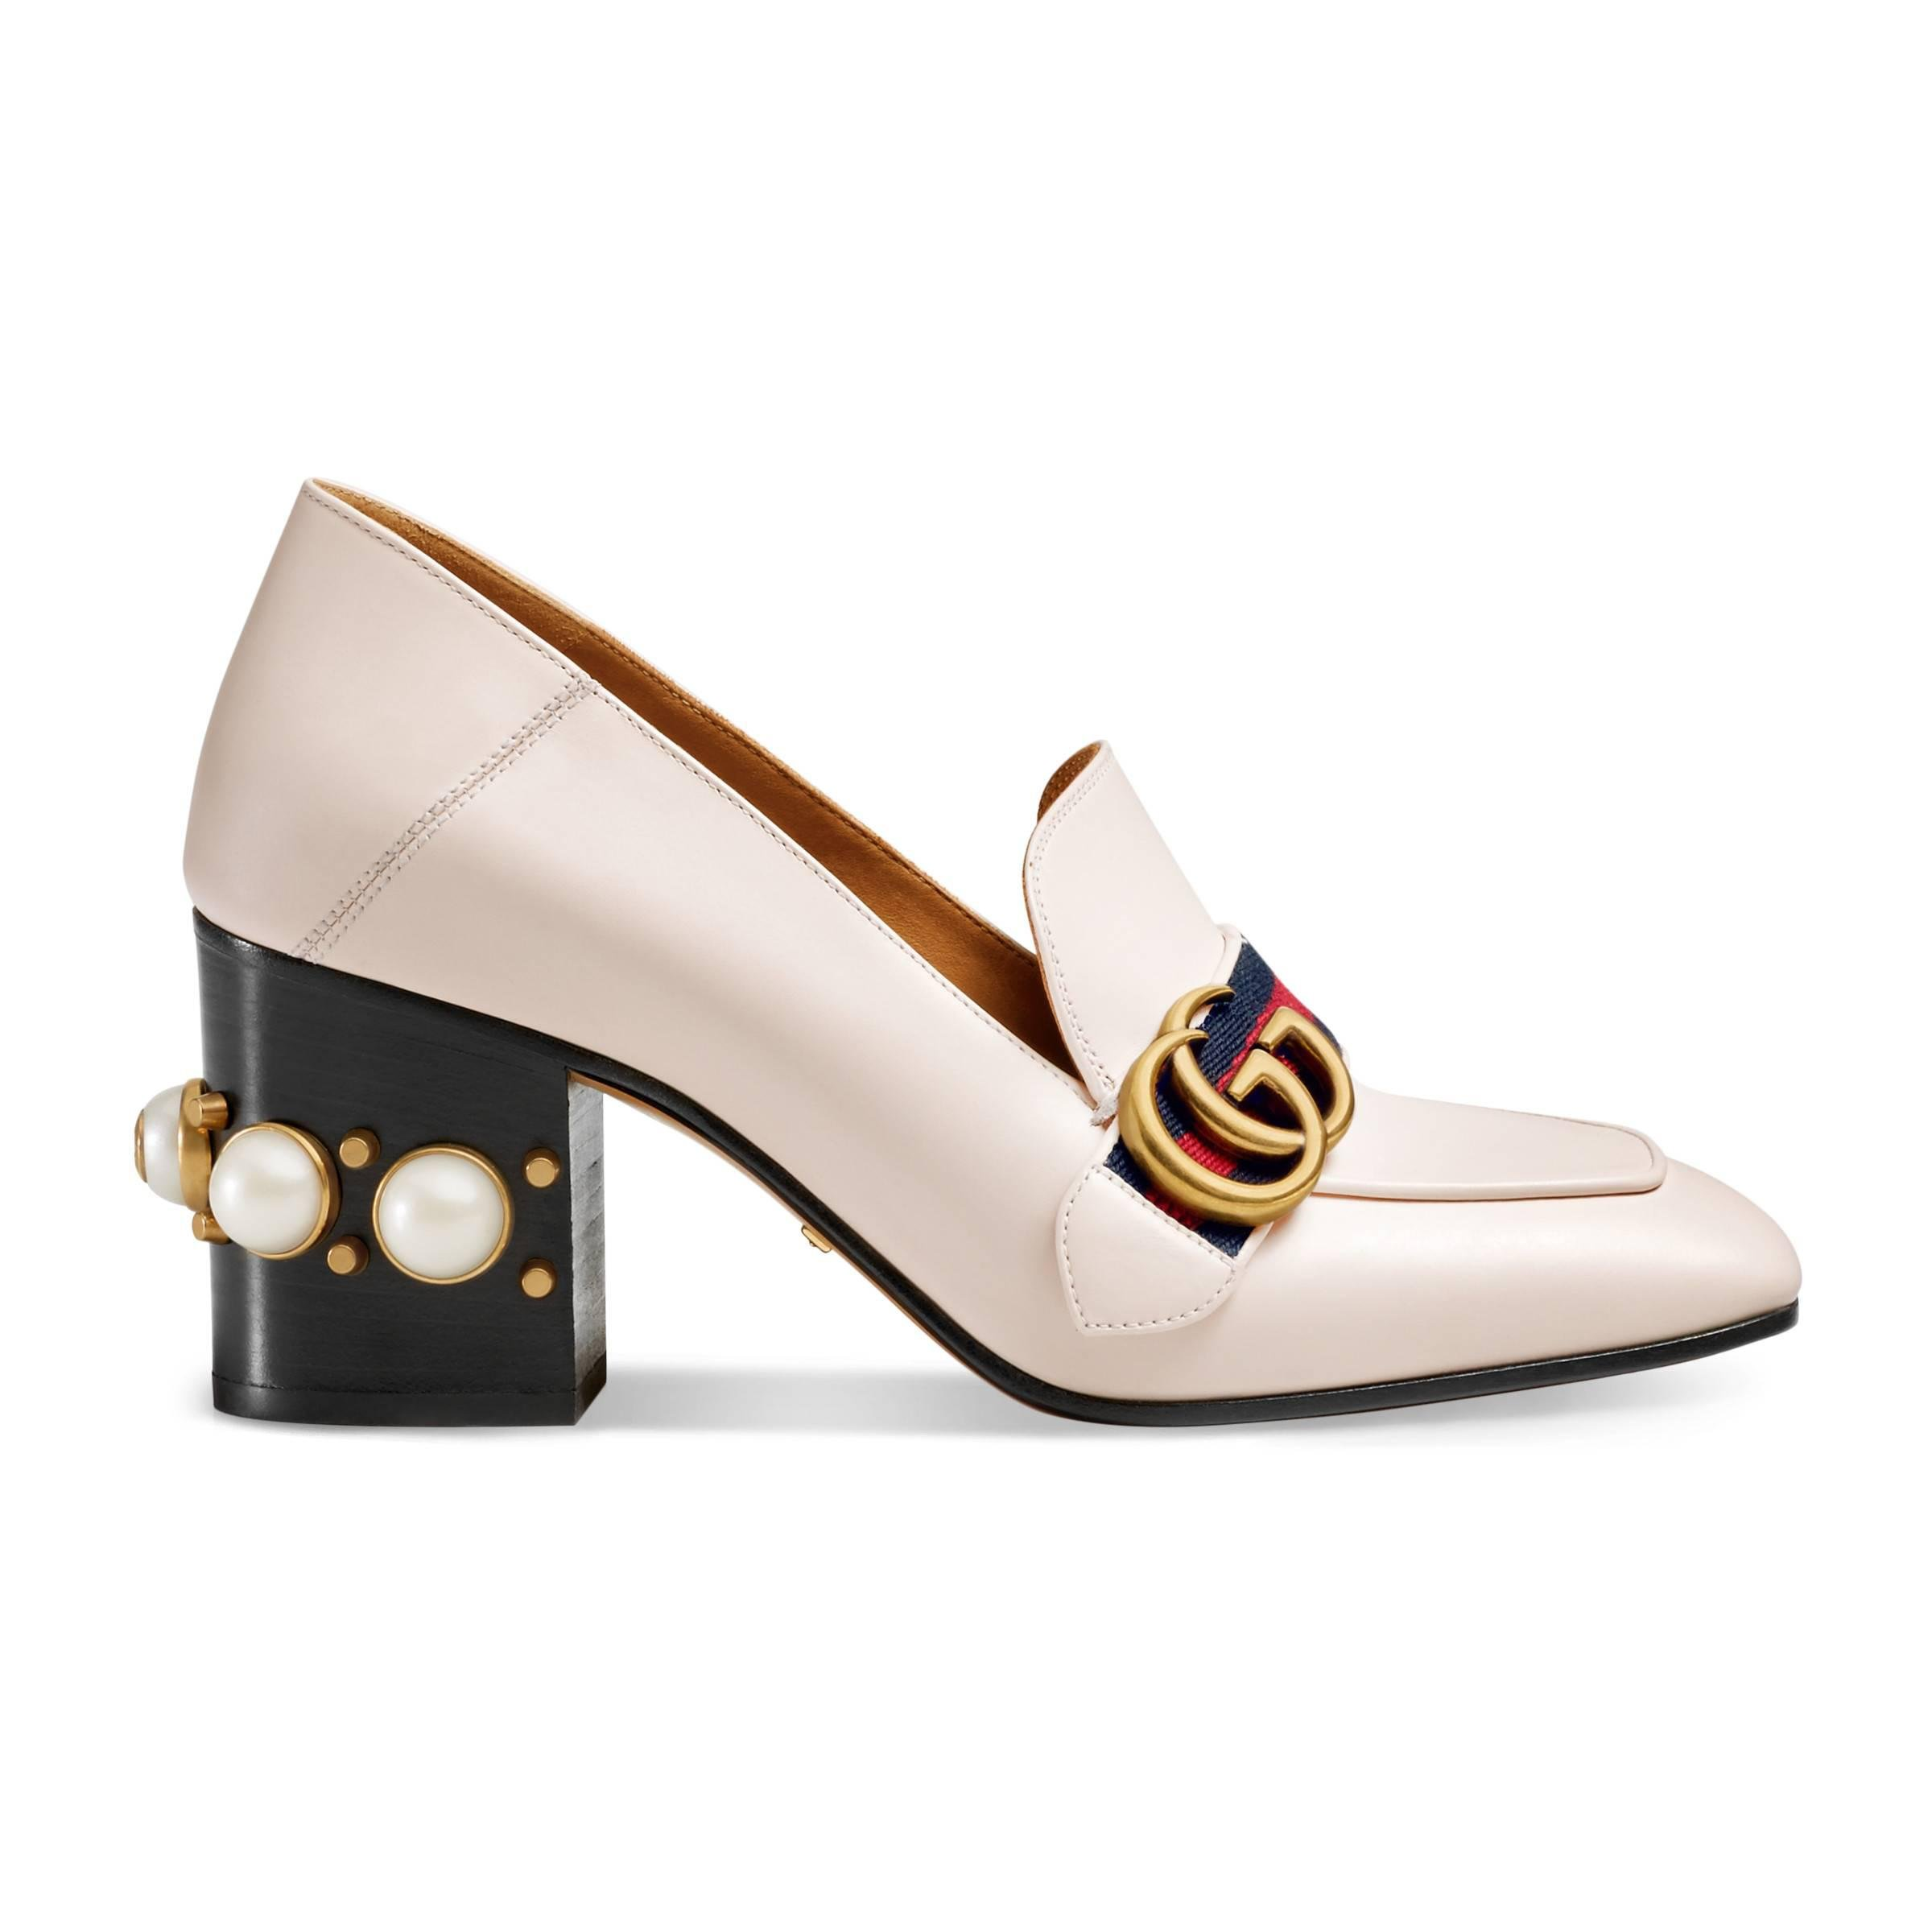 5a6f15f0932 Gucci Leather Mid-heel Loafer in White - Lyst